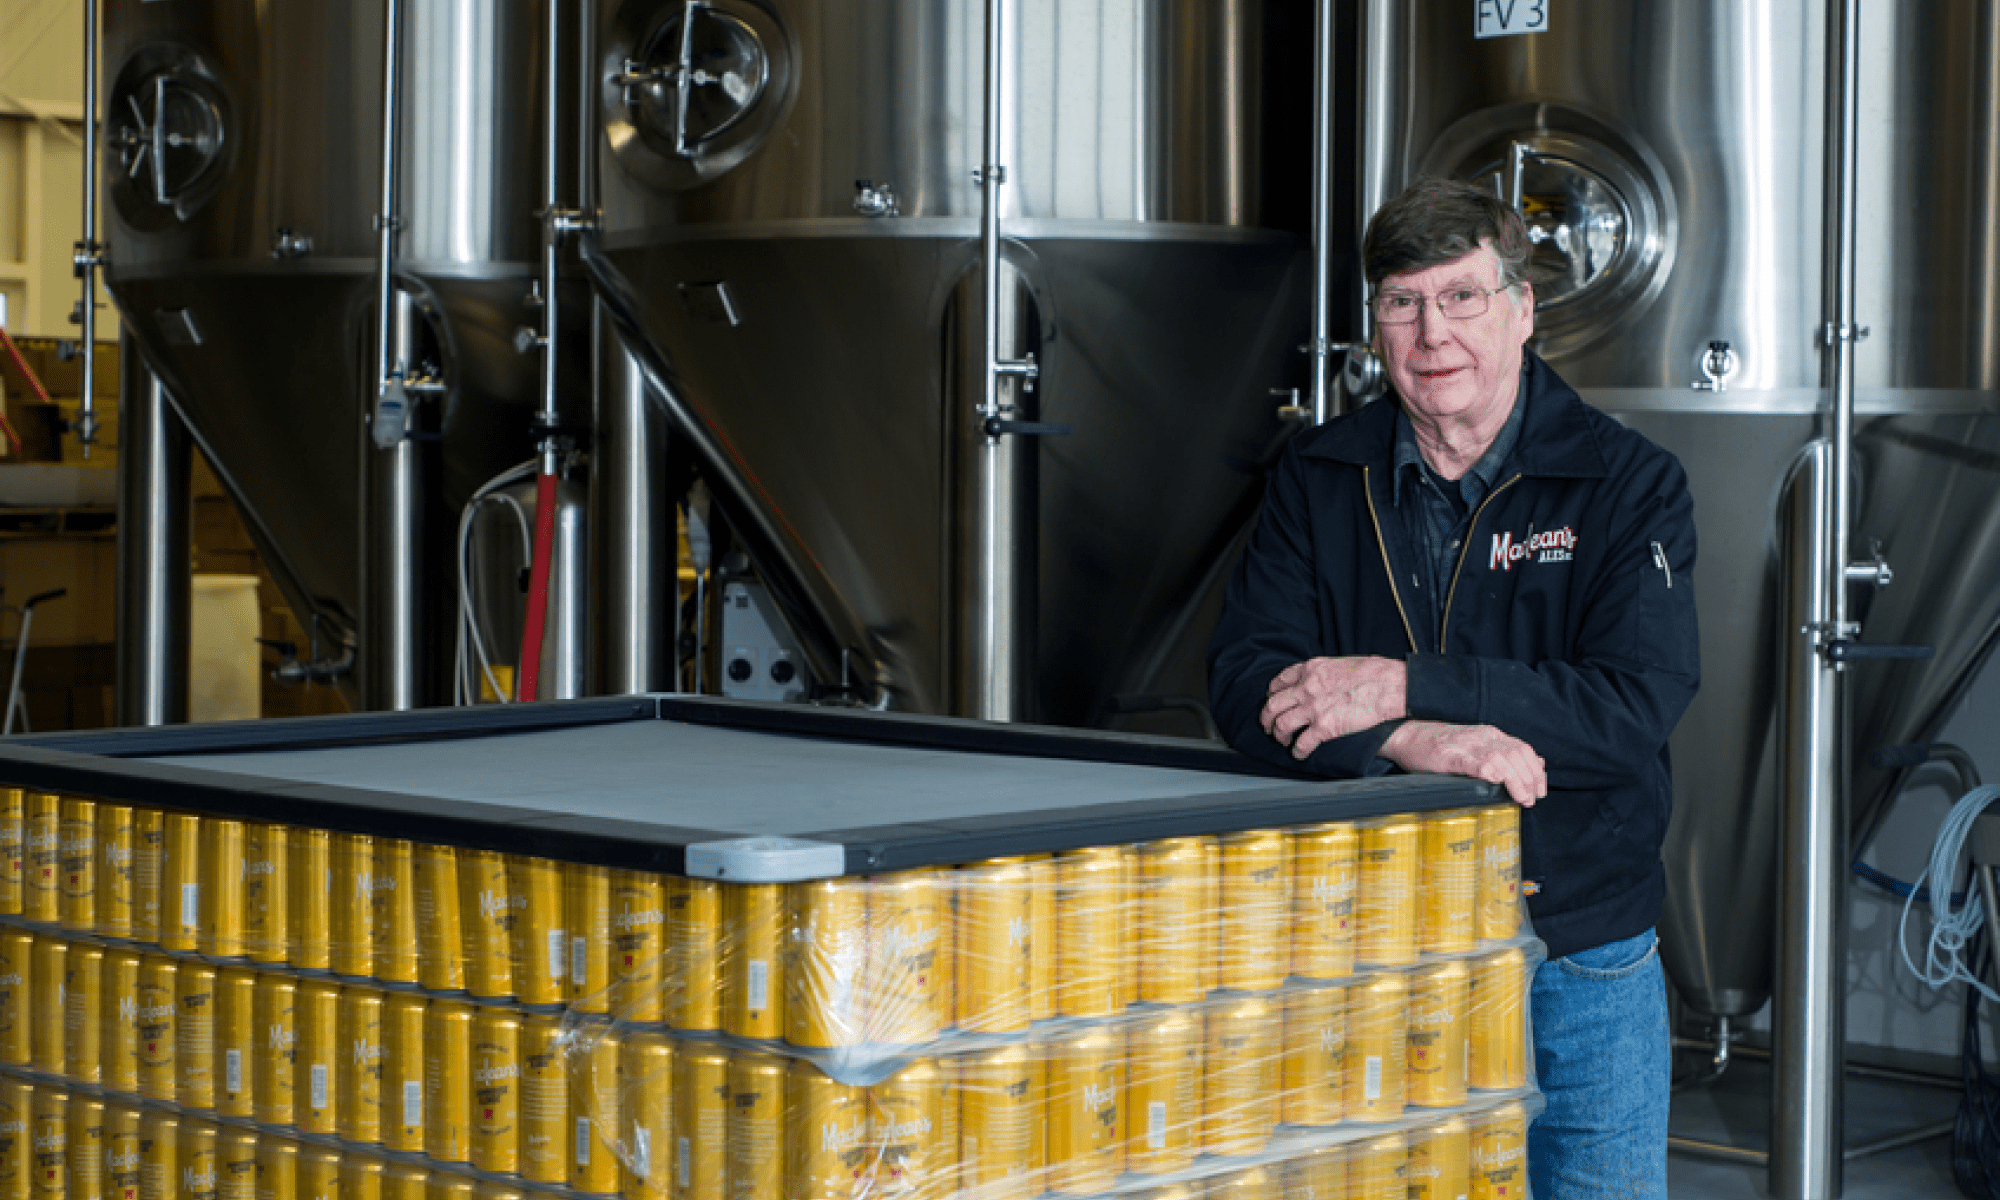 Charles Maclean with a crate of cans